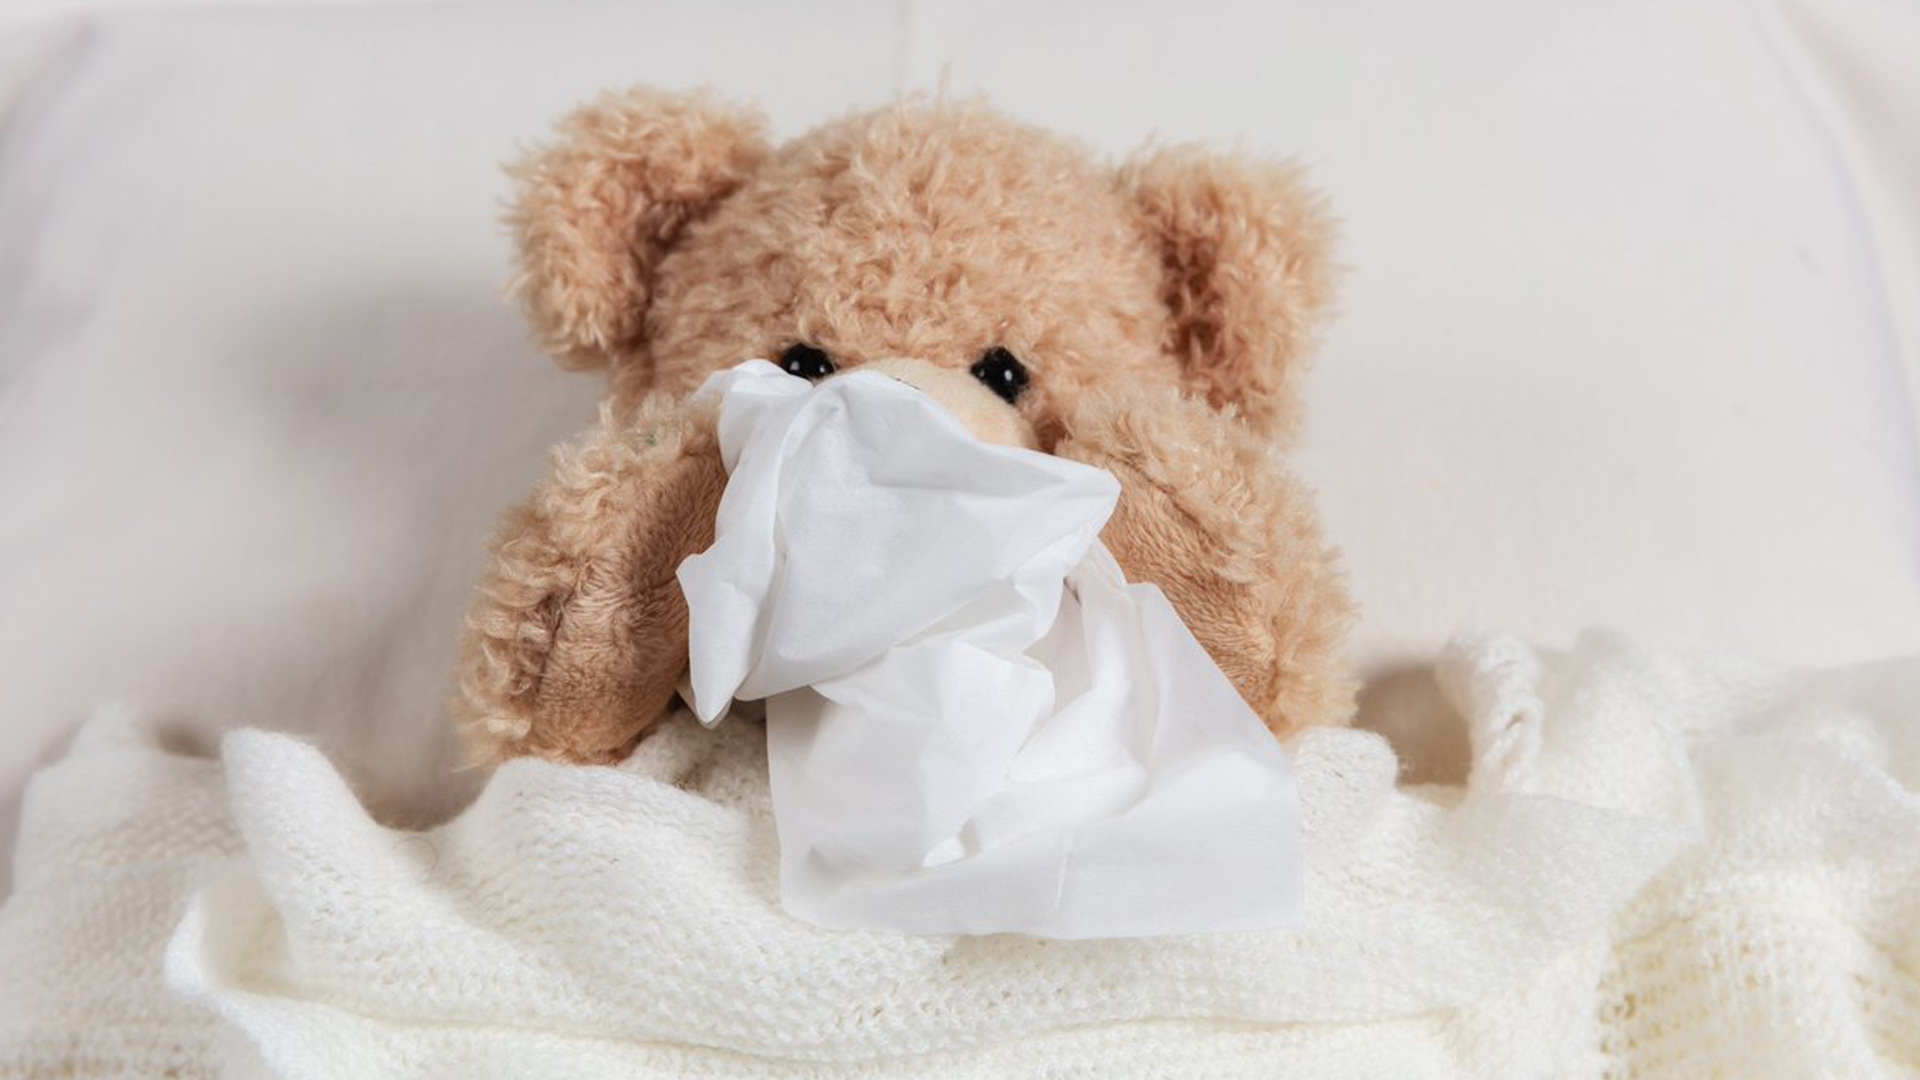 3 WAYS TO PREPARE YOUR HOME FOR FLU SEASON